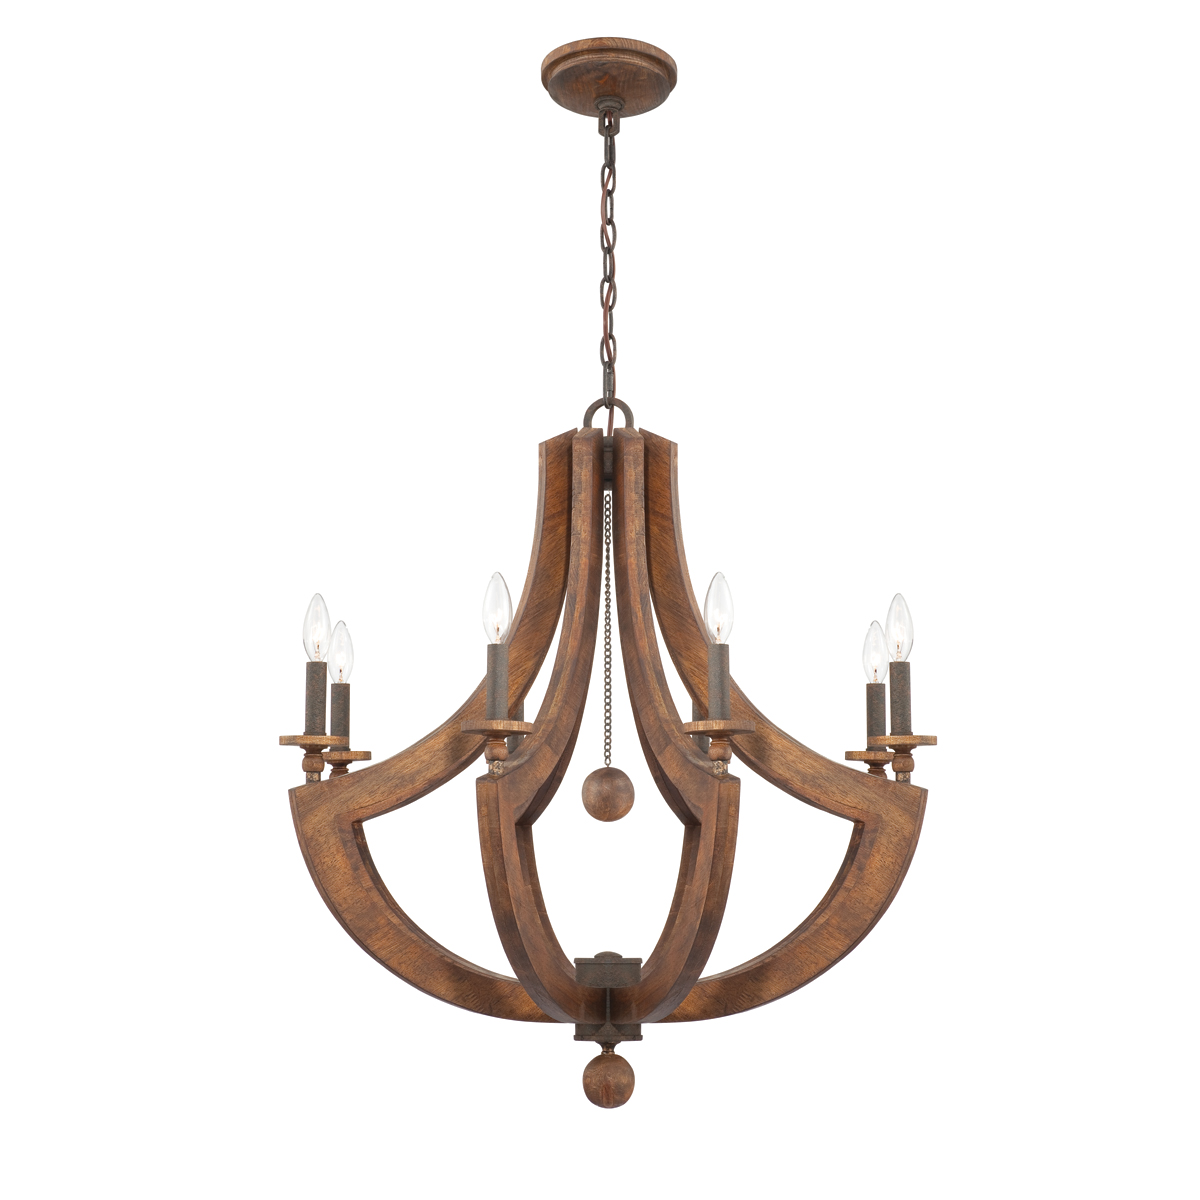 wood chandelier lighting. The Lenio Collection In A 8 Light Setting Wood Chandelier Lighting